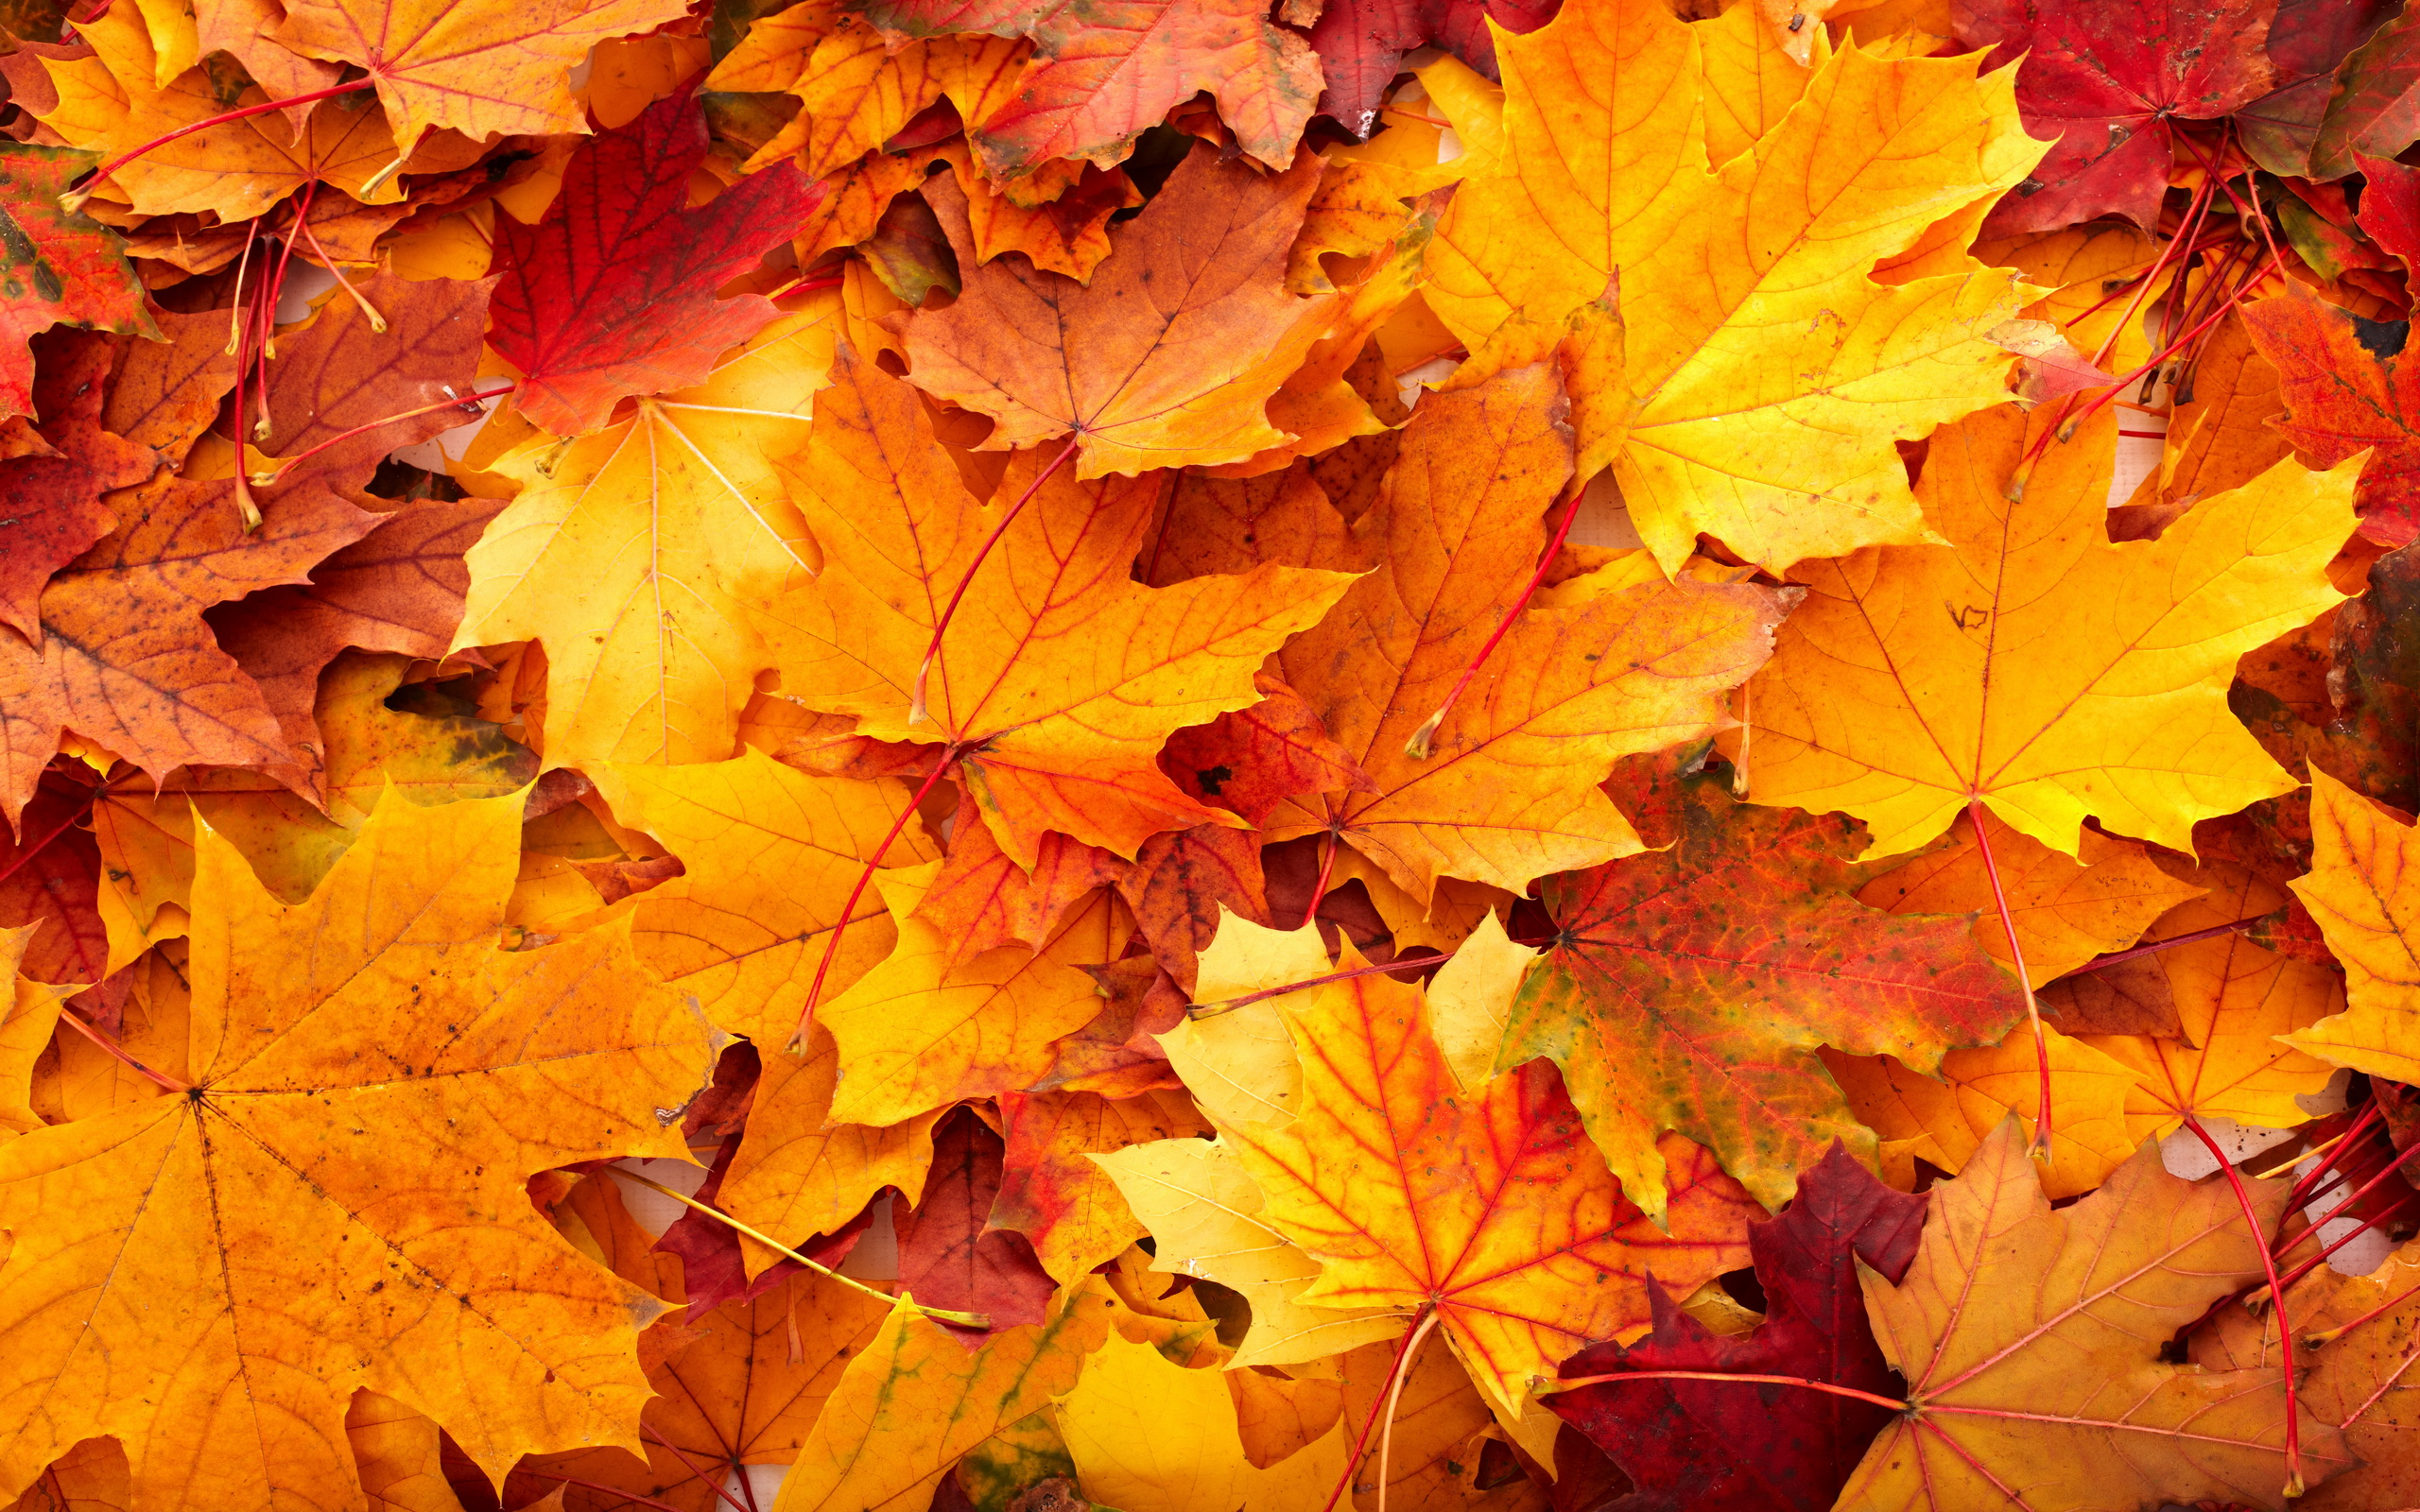 comwz MEDIAUploadsfall leaves wallpaper desktop 20563jpg 2560x1600